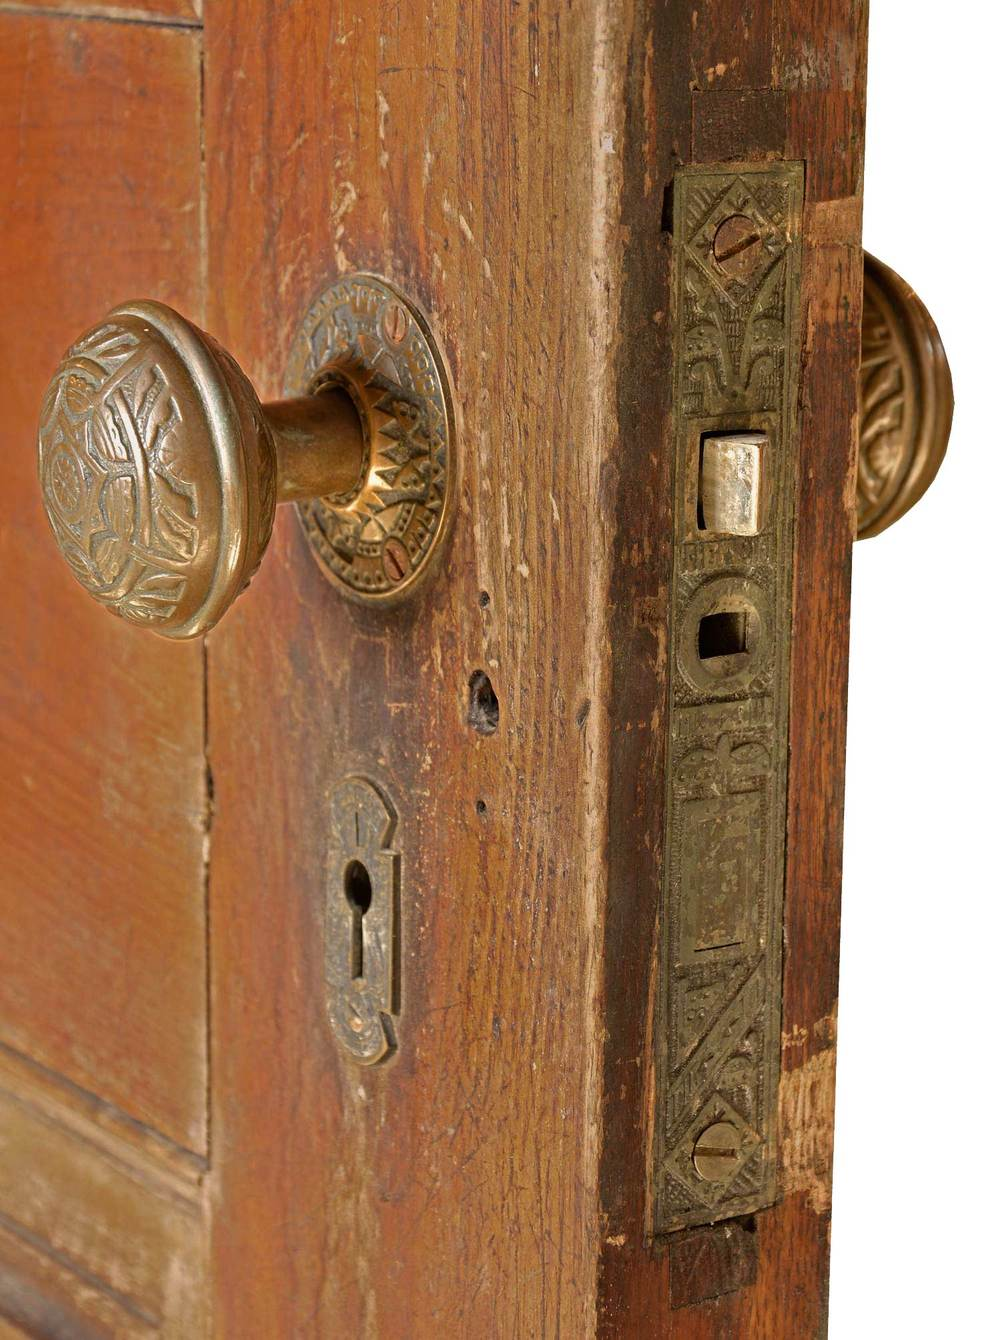 46019-double-doors-with-etched-glass-hardware.jpg